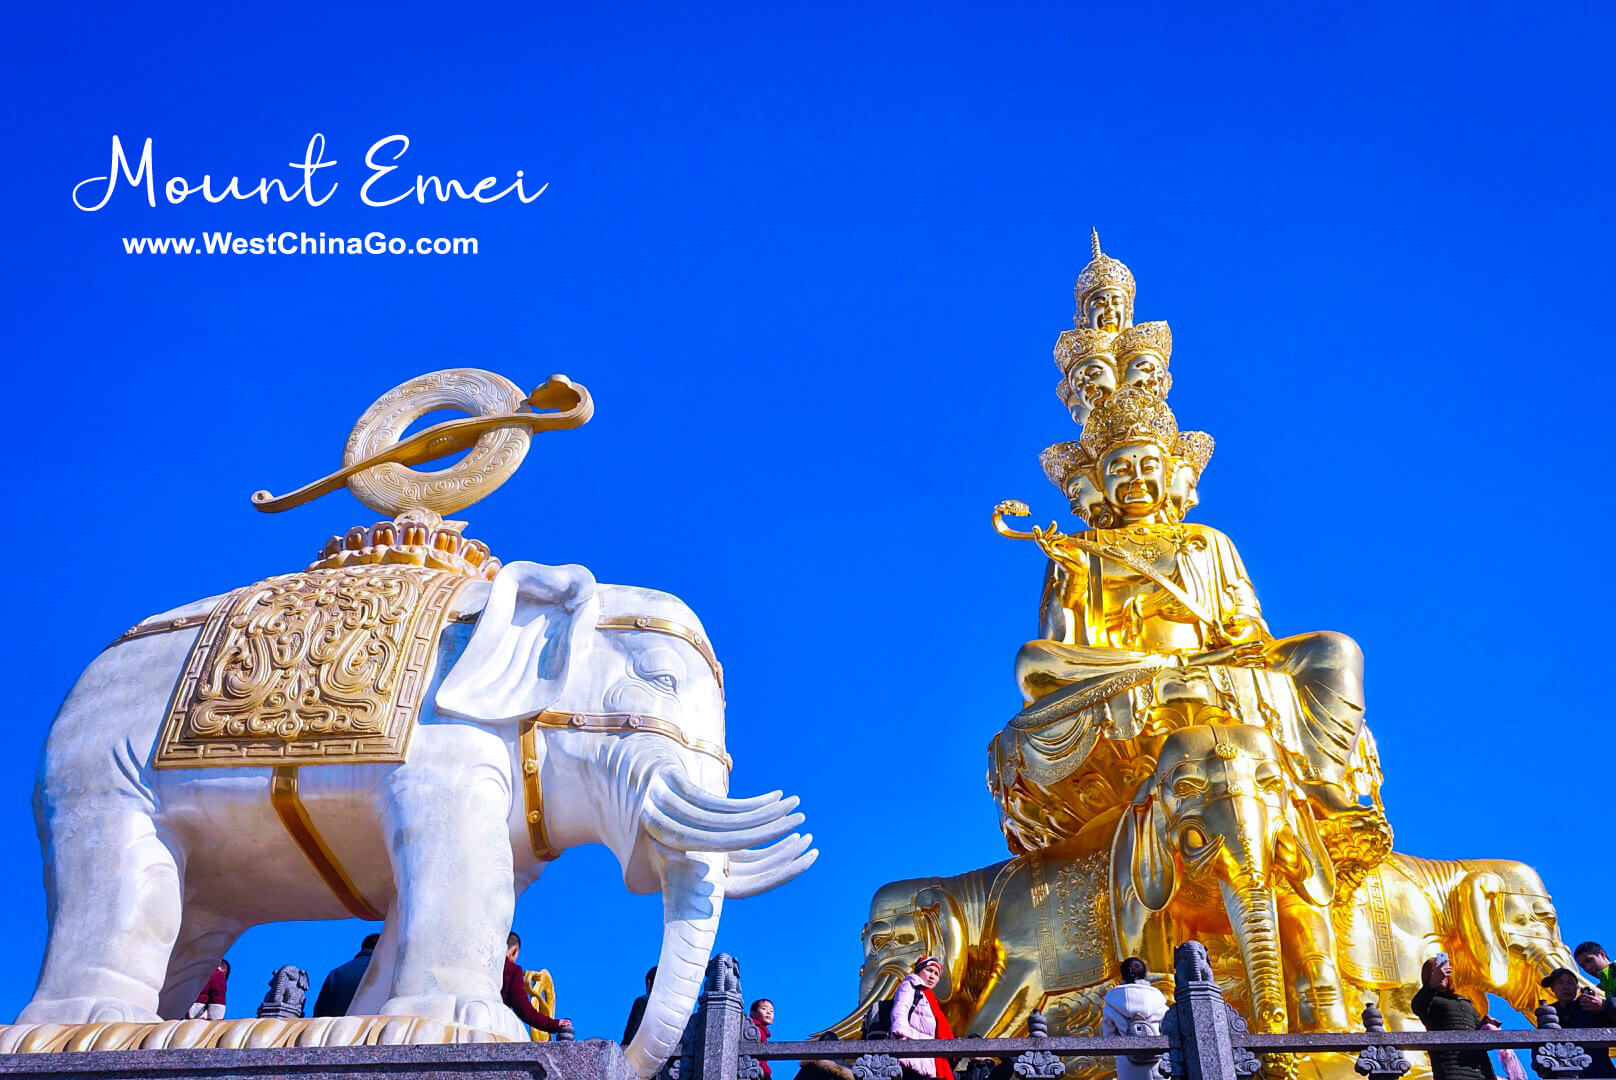 2-Day Mount Emei in-depth visit plus Wannian temple stay Tour